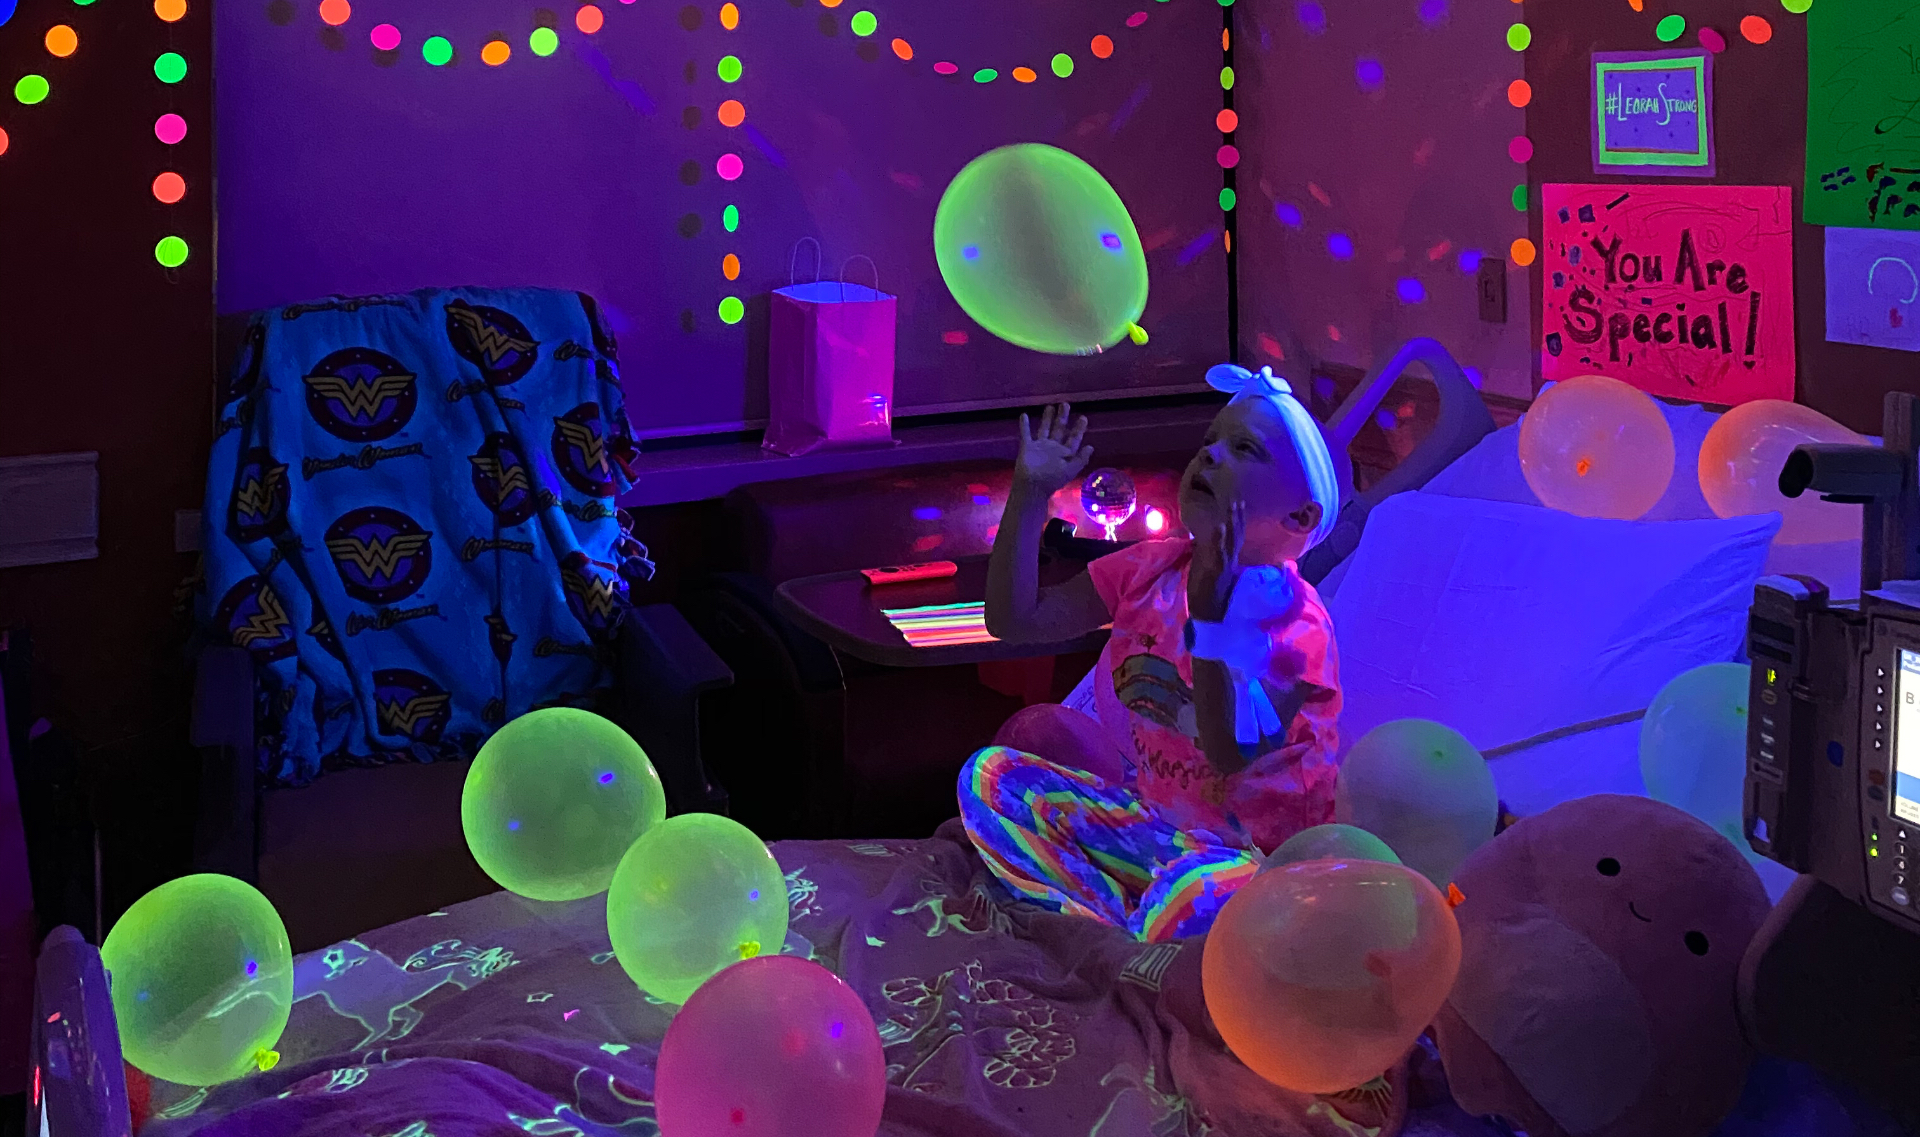 Lenorah plays with a balloon while sitting on her hospital bed, which is being illuminated by a blacklight. The room is filled with balloons and streamers, all of which are glowing.